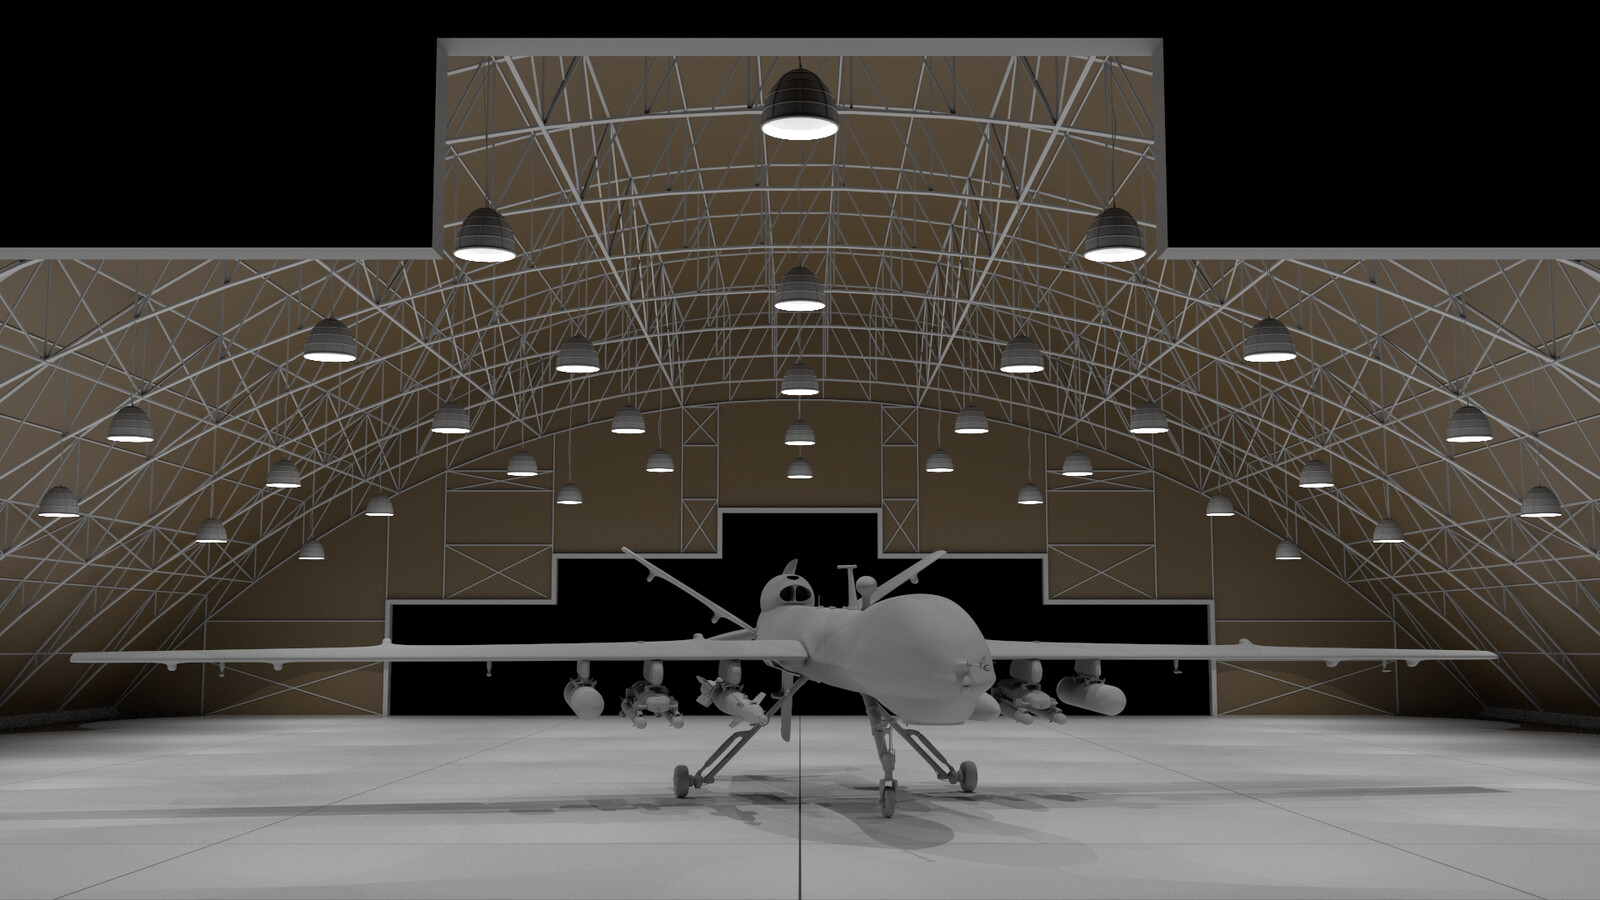 Procedural Modelling: Hangar Building